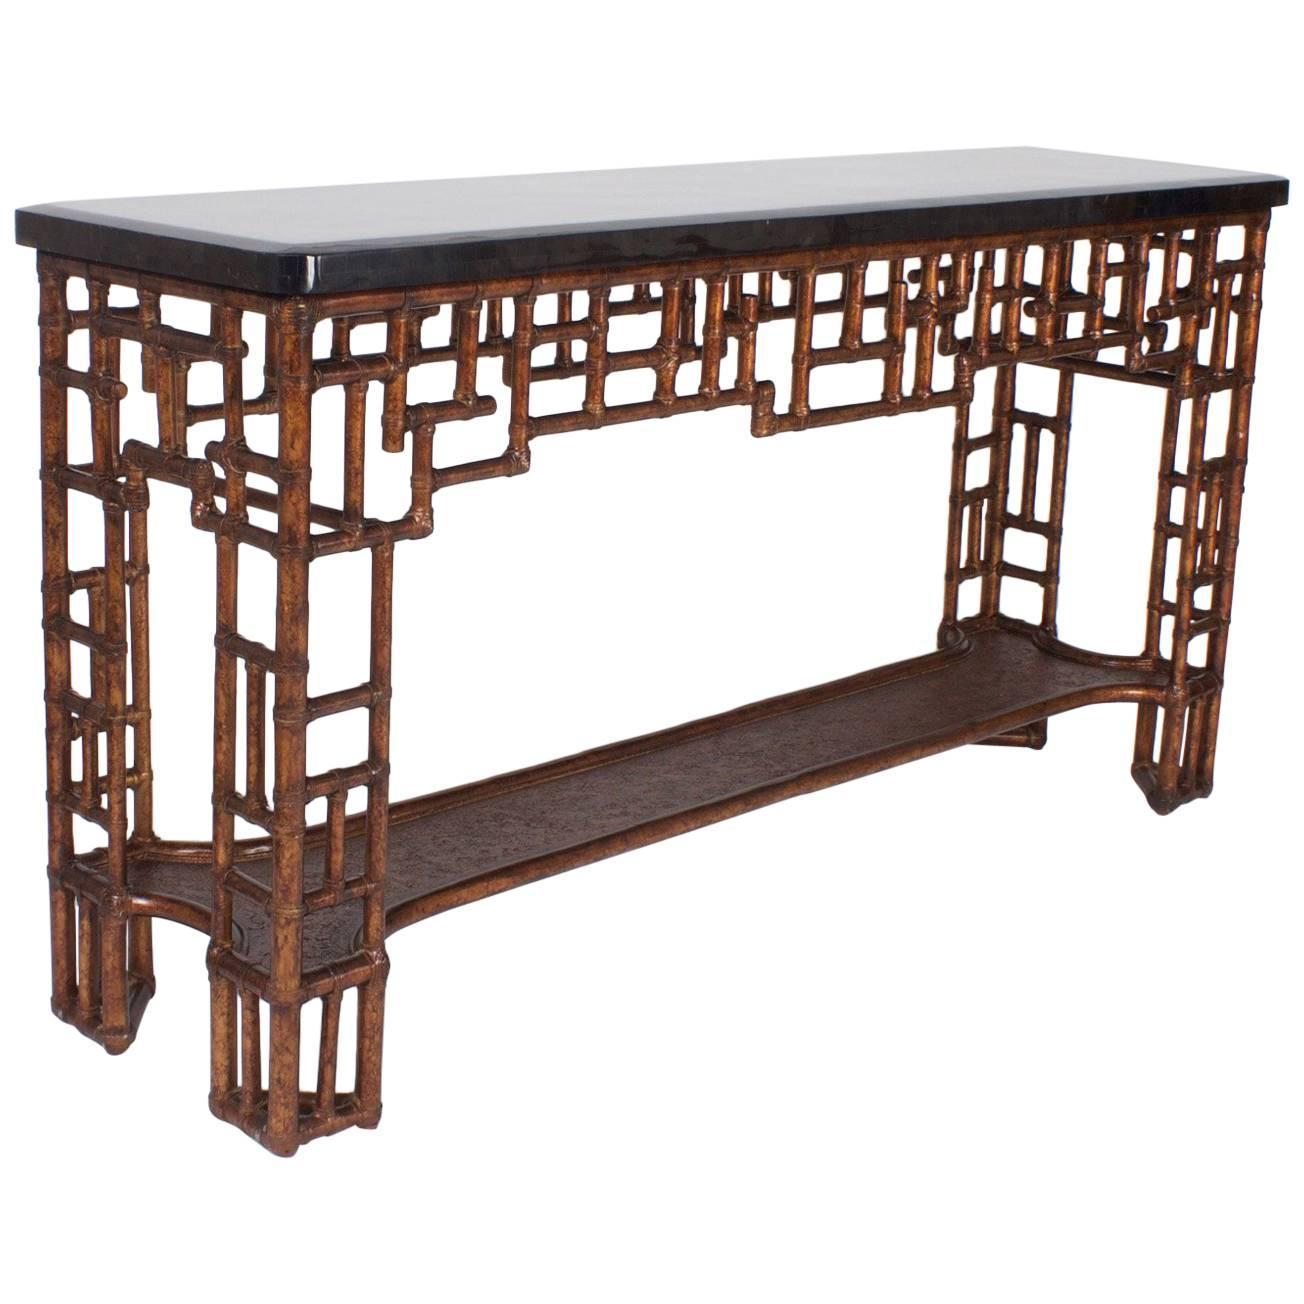 Mid century chinese chippendale style console table for sale at mid century chinese chippendale style console table for sale at 1stdibs geotapseo Images